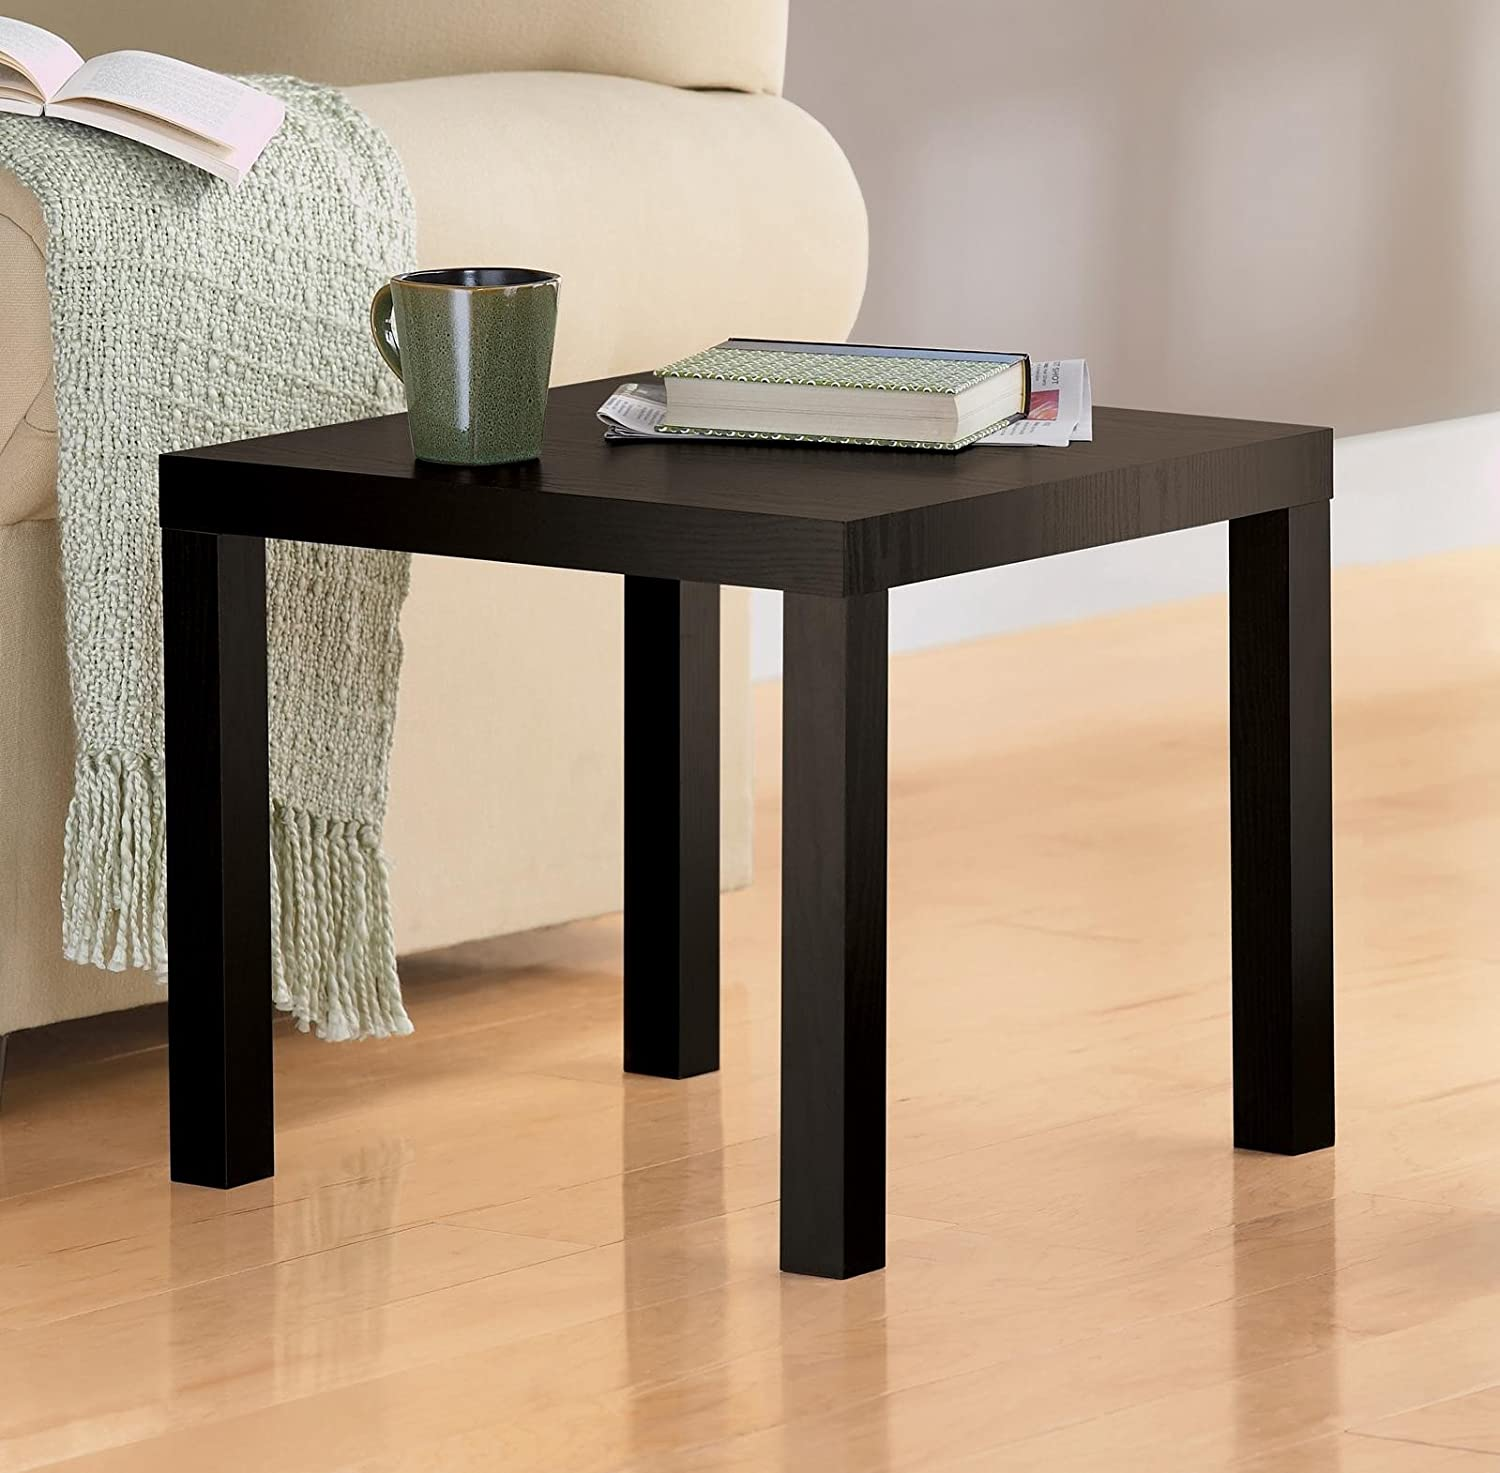 Amazon.com: DHP Parsons Modern Coffee Table, Black Wood Grain U0026 DHP Parsons Modern  End Table, Black Wood Grain: Kitchen U0026 Dining